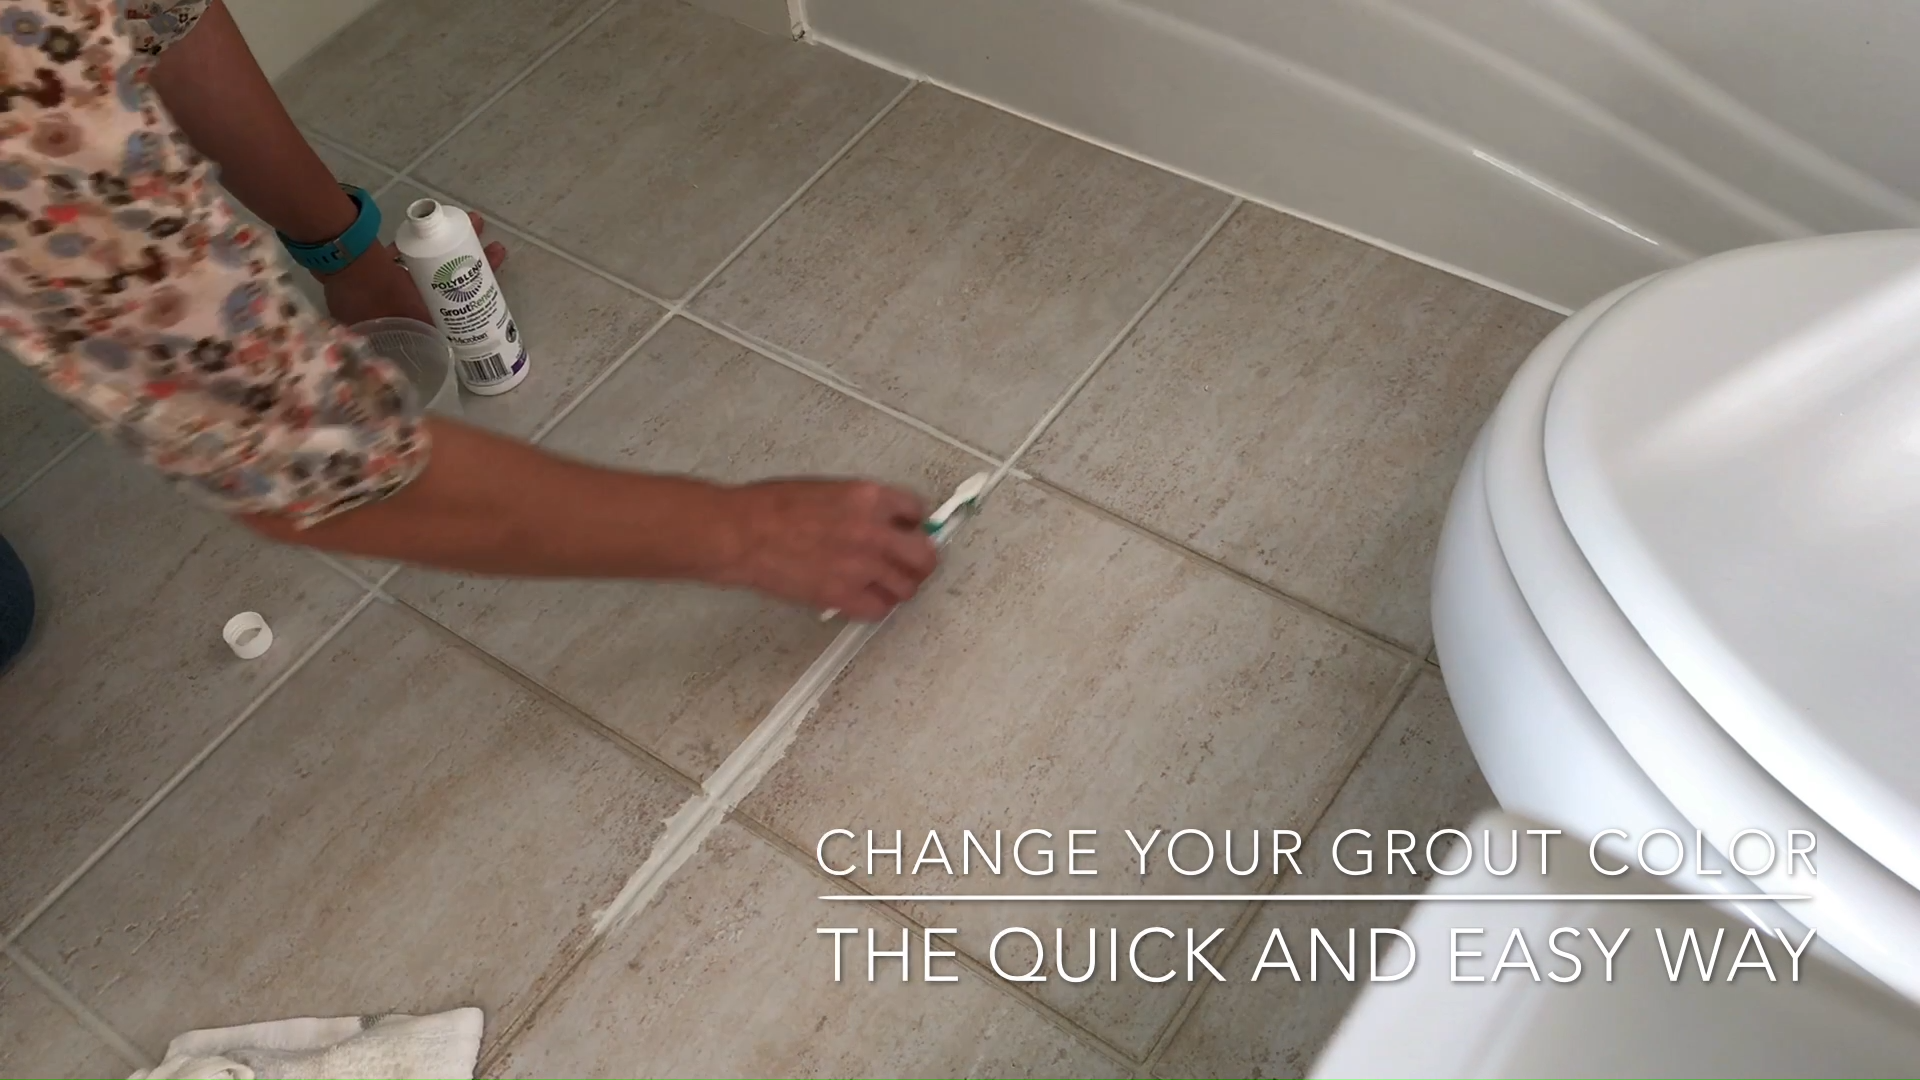 How to Change Grout Color, the easy way! is part of Grout cleaning diy, Cleaning floor grout, Cleaning painted walls, Tile grout cleaner, Painting bathroom tiles, Tile floor cleaner - Whether you just want to go back to white or pick a new grout color   I have the easy and quicks steps for How to Change Grout Color!